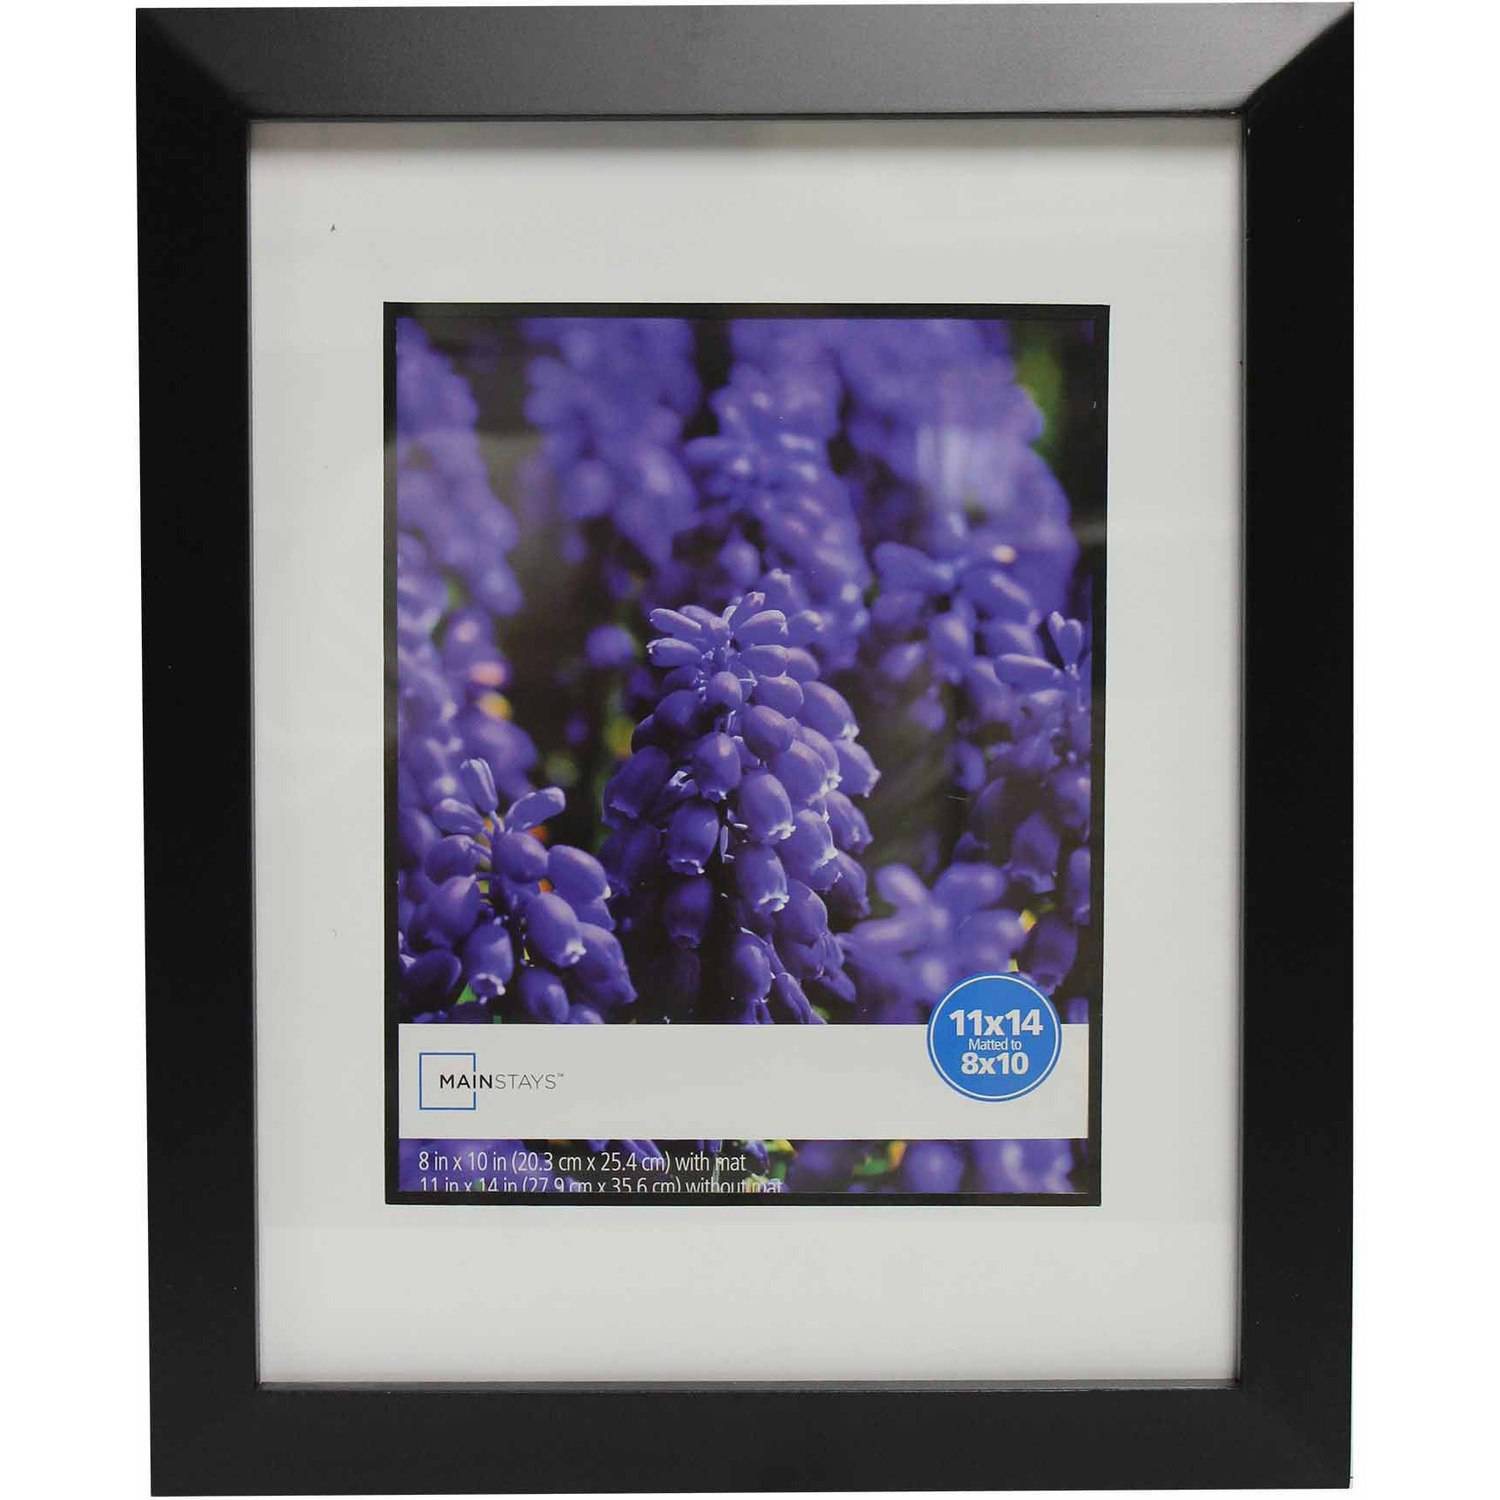 mainstays wide picture frame 11x14 matted to 8x10 walmartcom